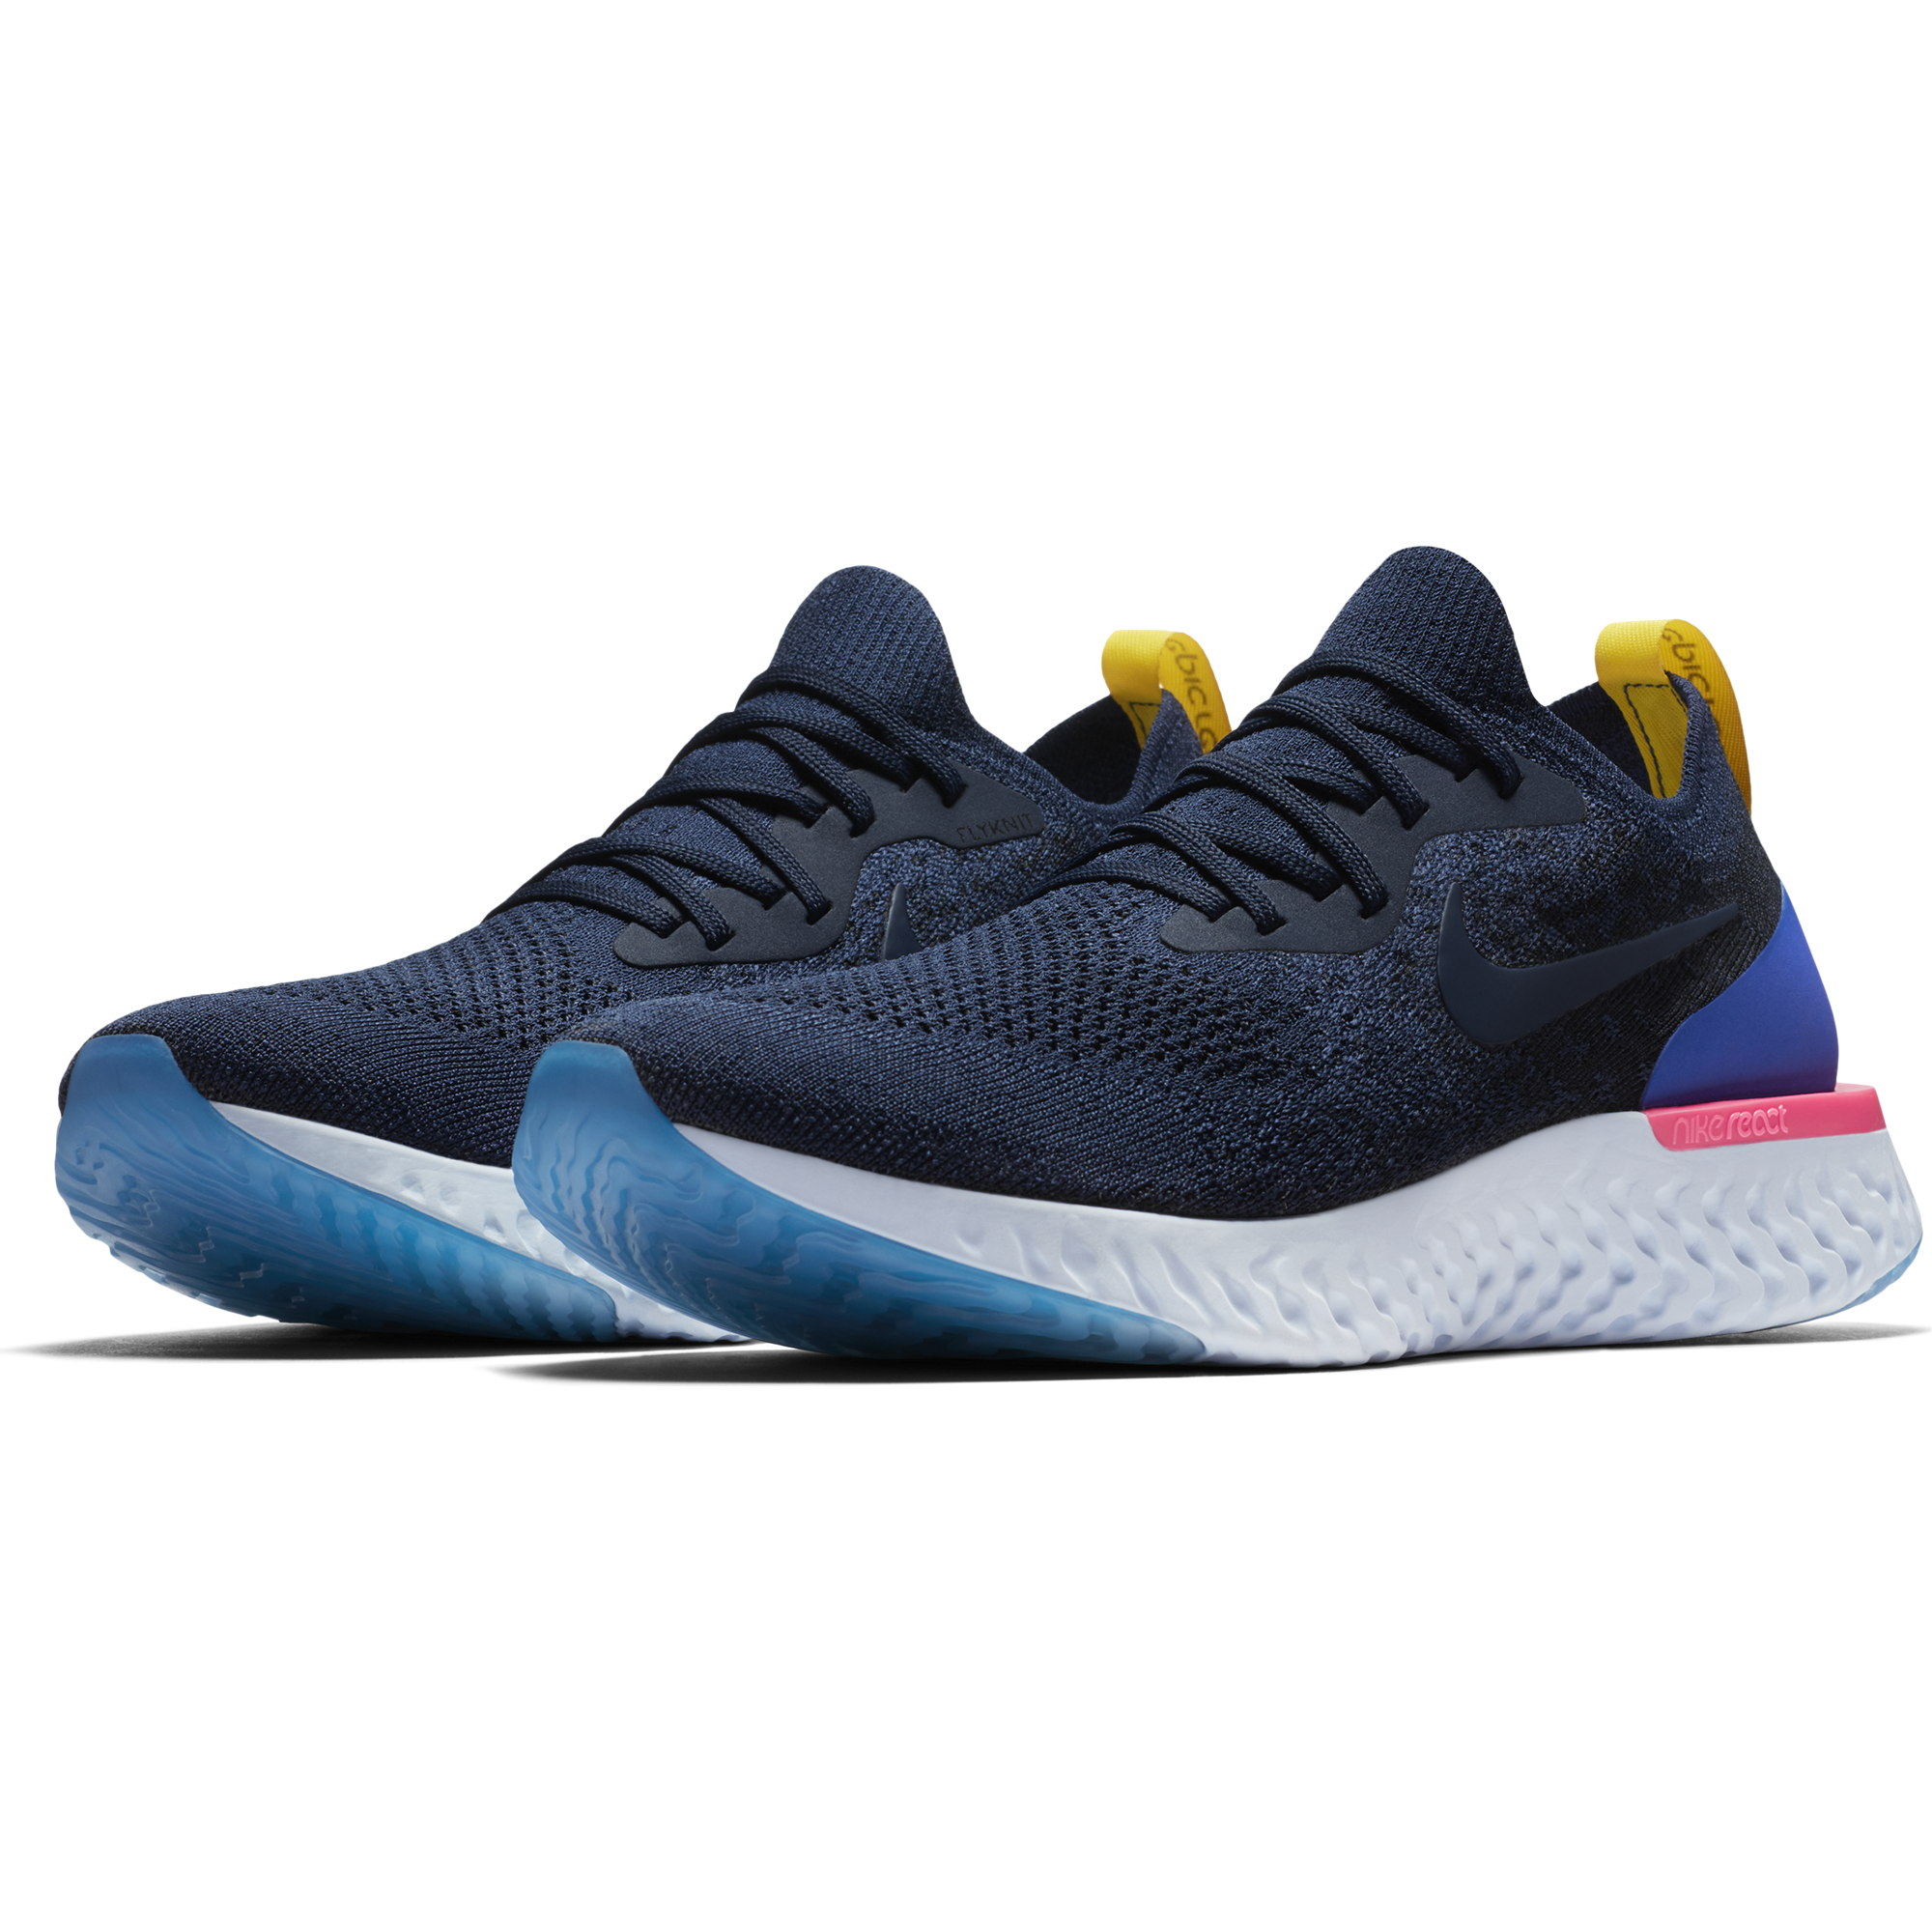 ... Blue Men s Epic React Flyknit Running Shoe - College Navy College Navy  Racer ... 5f4a984ca